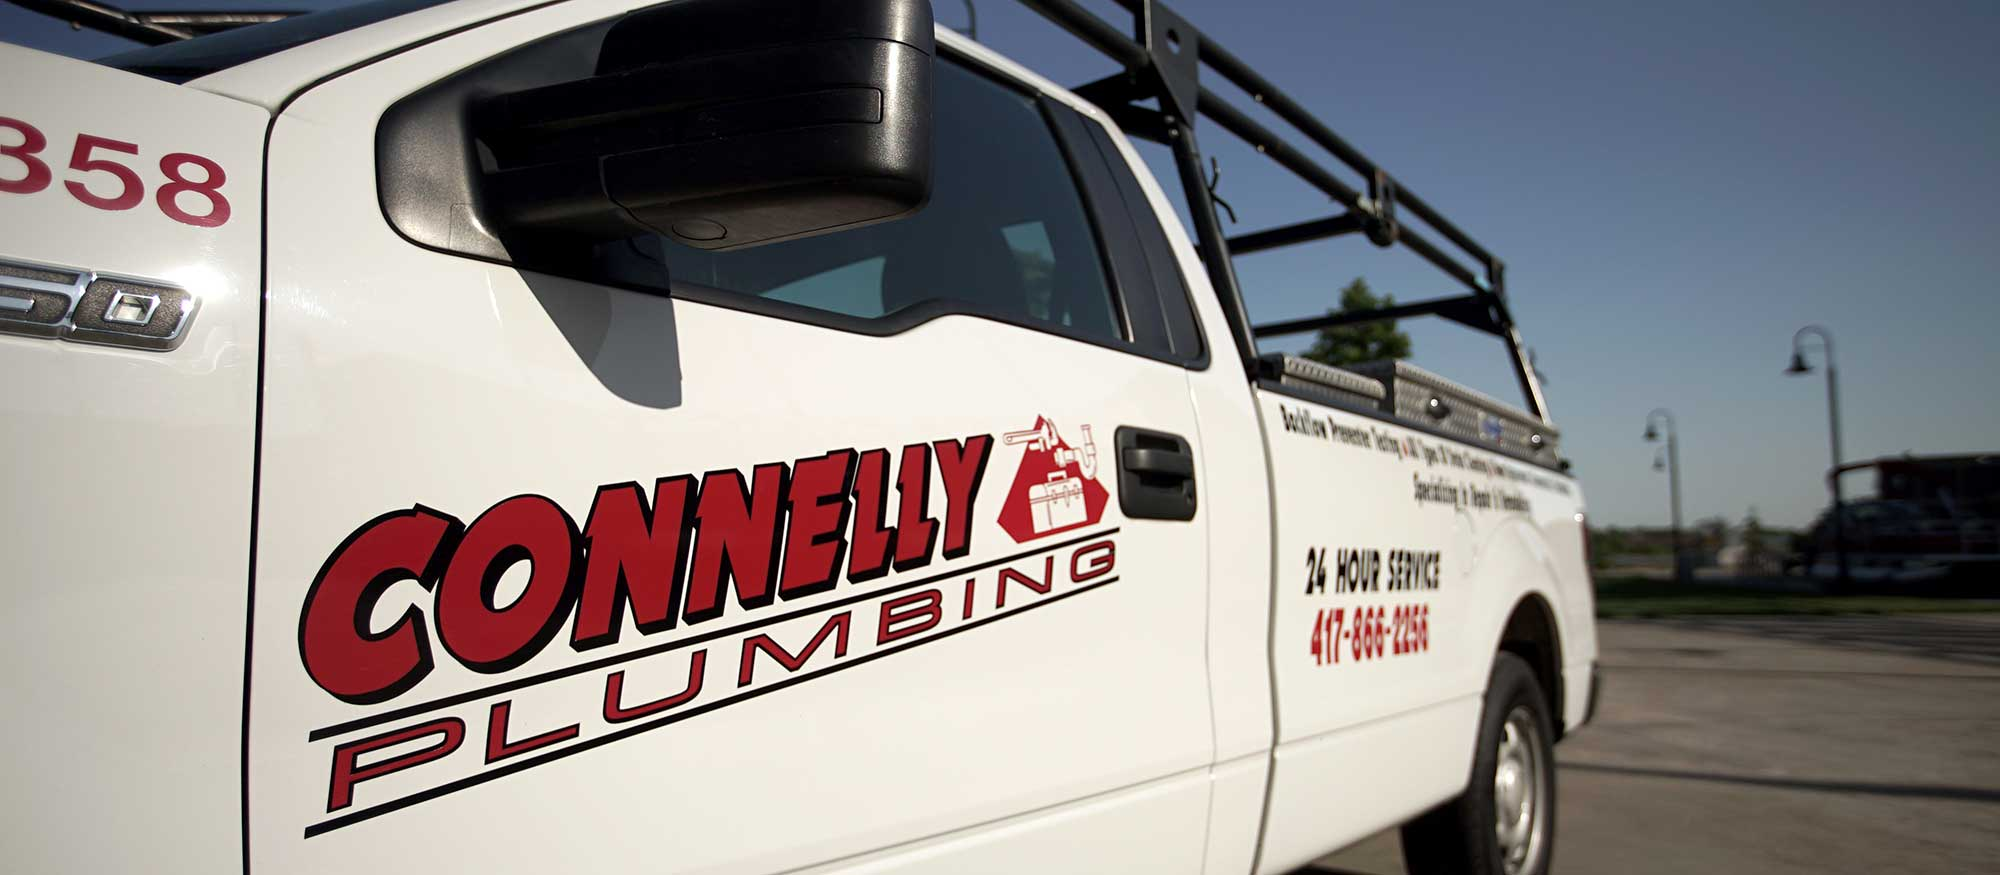 connelly plumbing truck